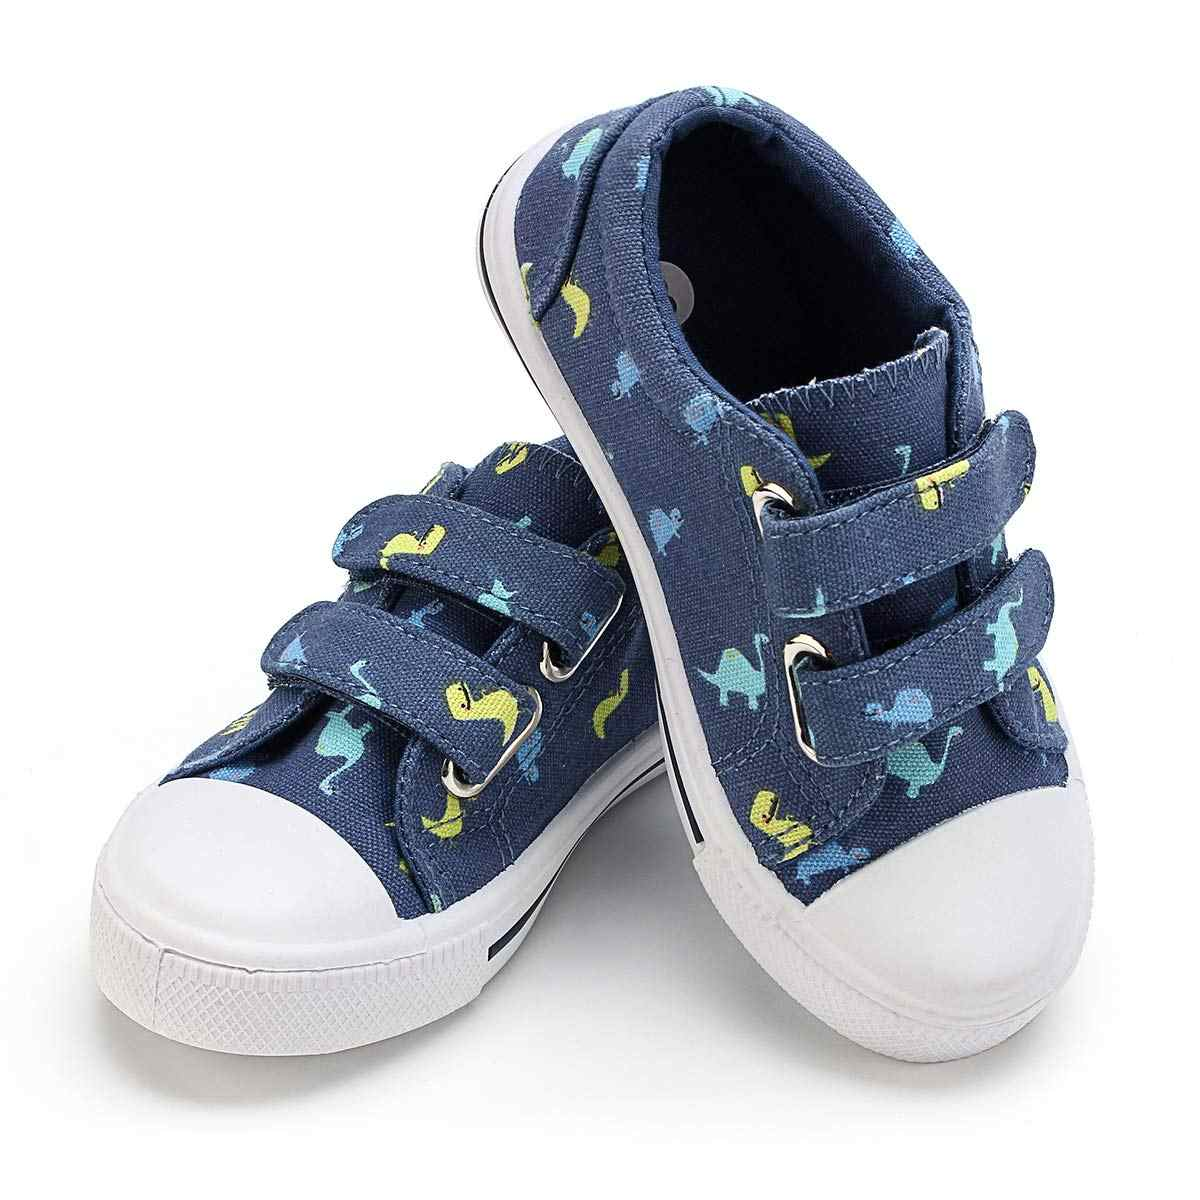 KushyShoo Kids Toddler Sneakers Cartoon Dual Hook and Loops Boys Sneakers Shoes Canvas Shoes Children